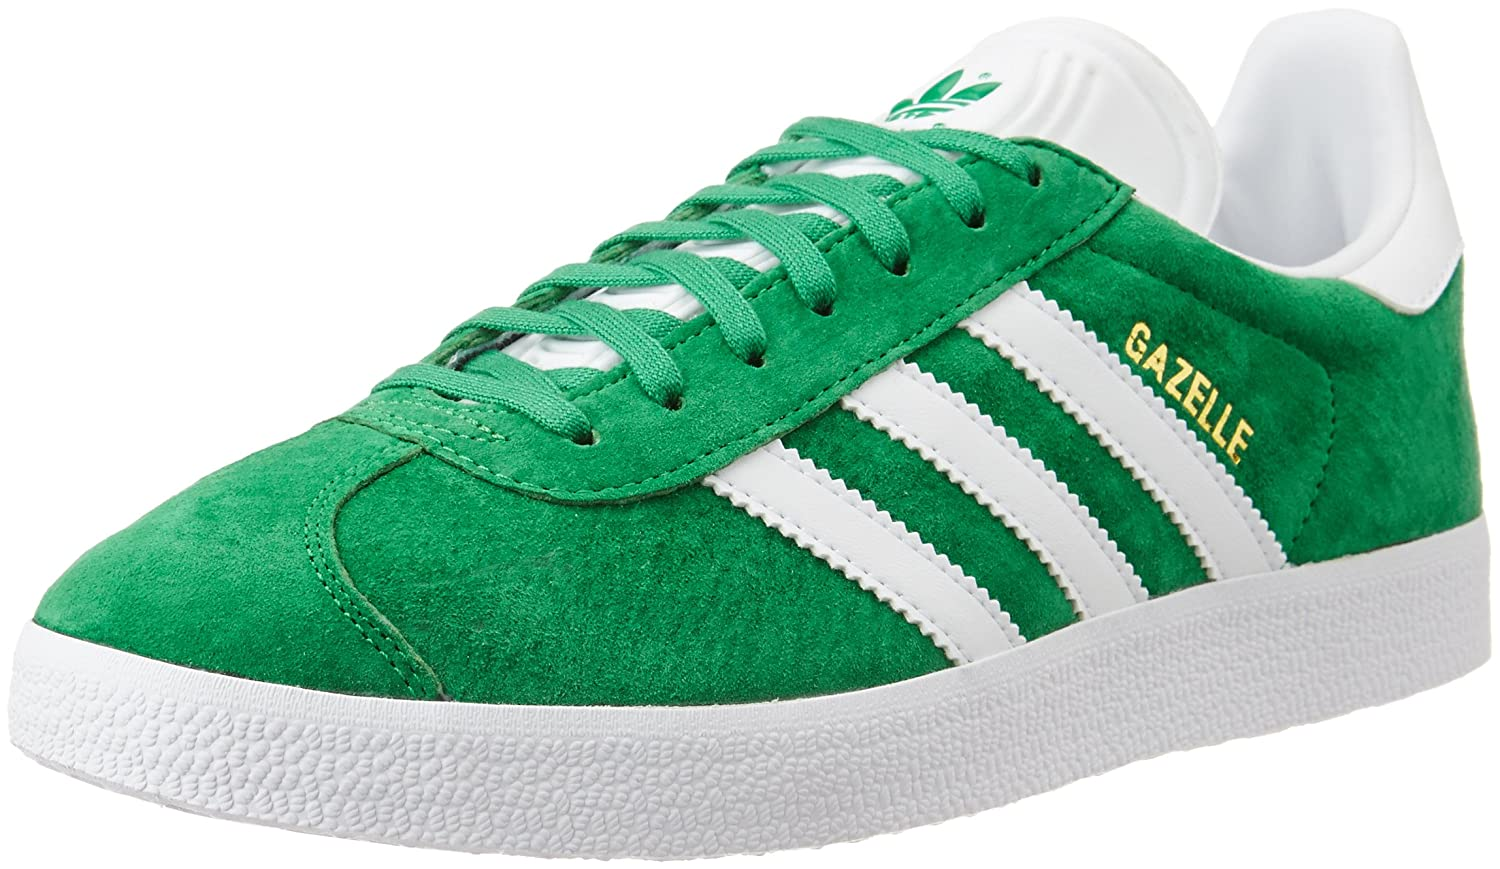 adidas Orignals Gazelle Mens Trainers Sneakers B01EI9ILZE 9 M UK|Green